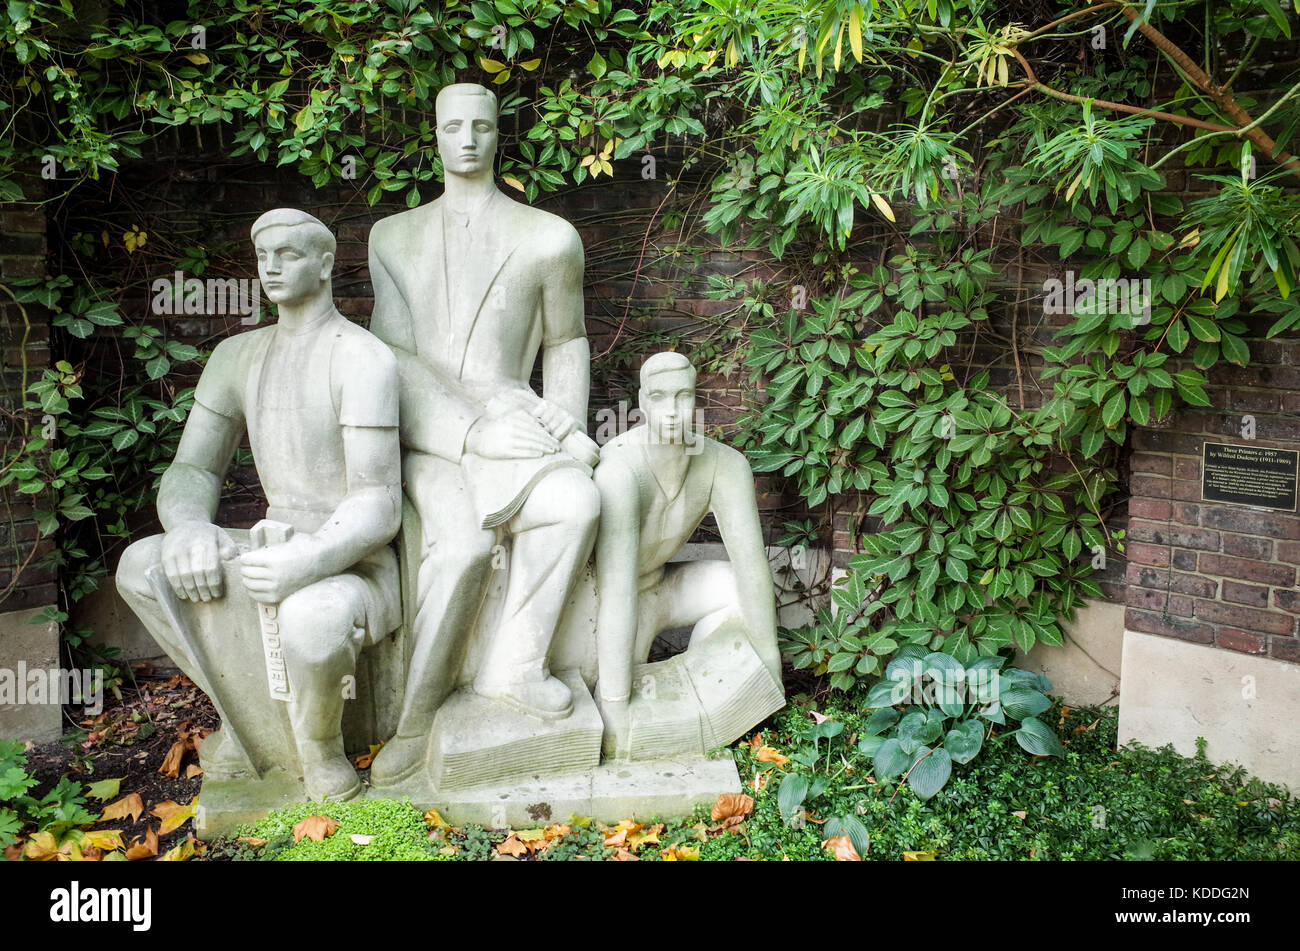 Three Printers Sculpture ( 1957 ) by Wilfred Dudeney located in the   Goldsmiths Company garden in Gresham Street - Stock Image